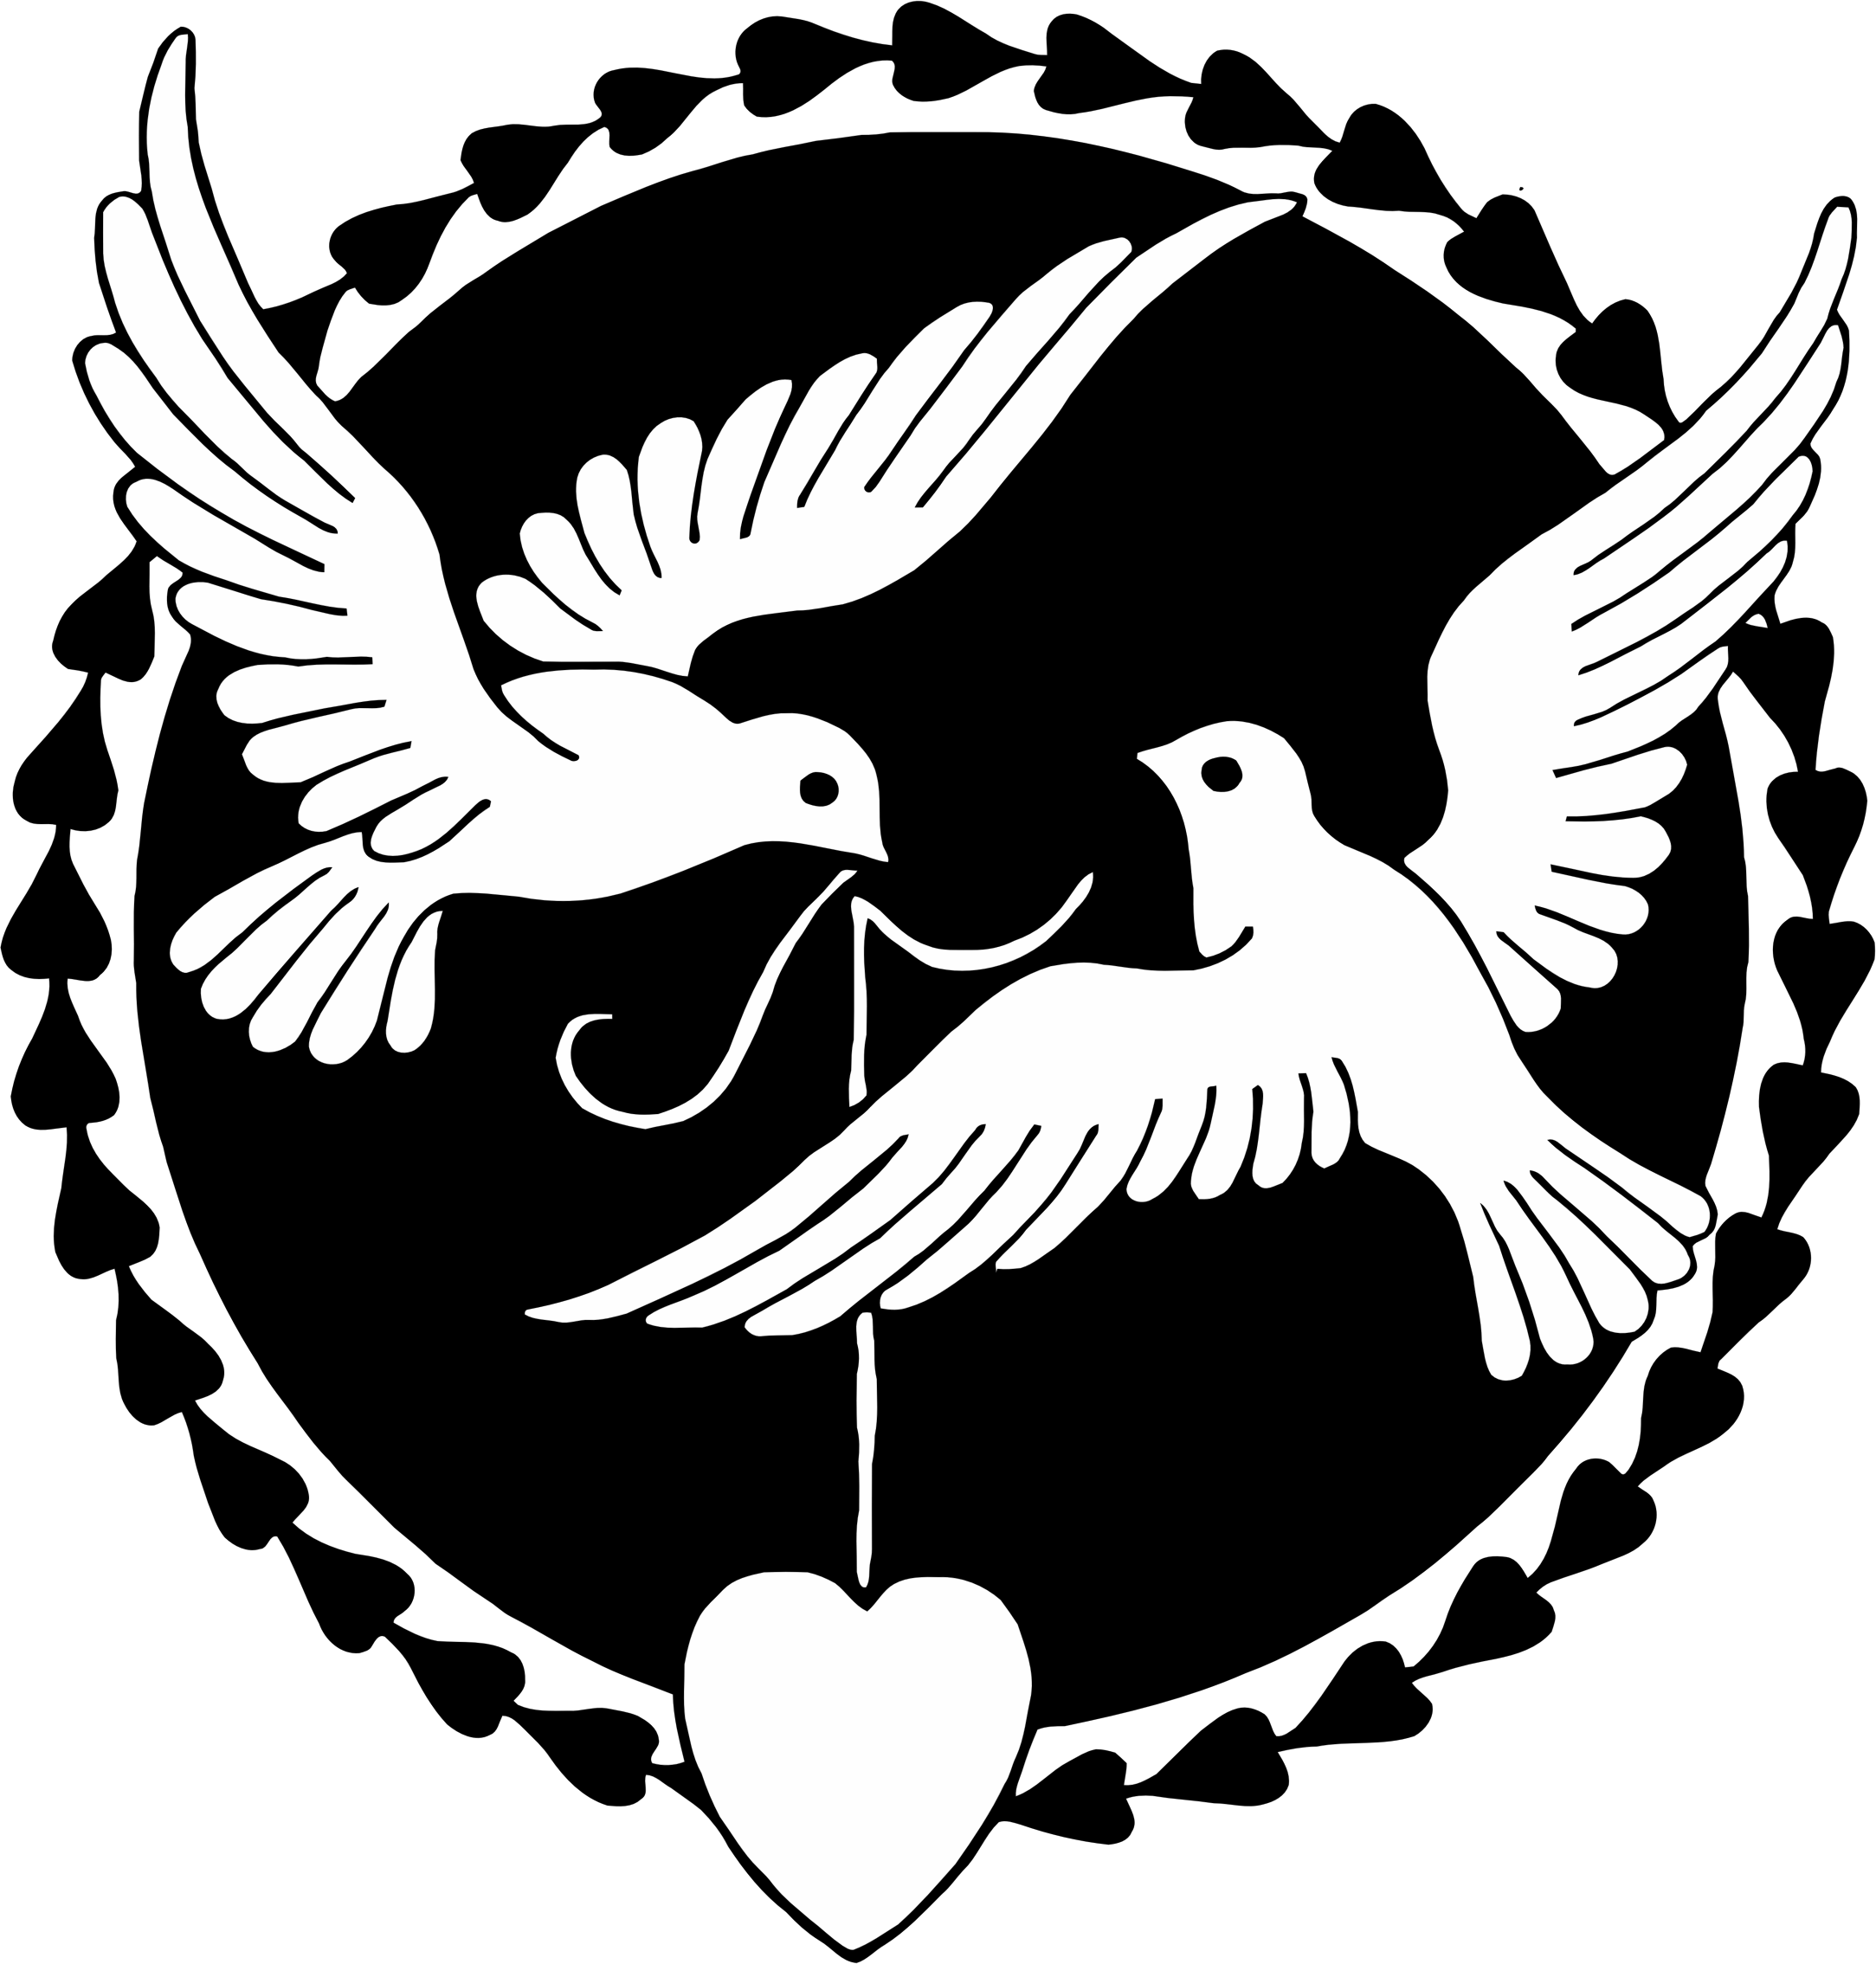 Dove clipart love dove. Doves big image png